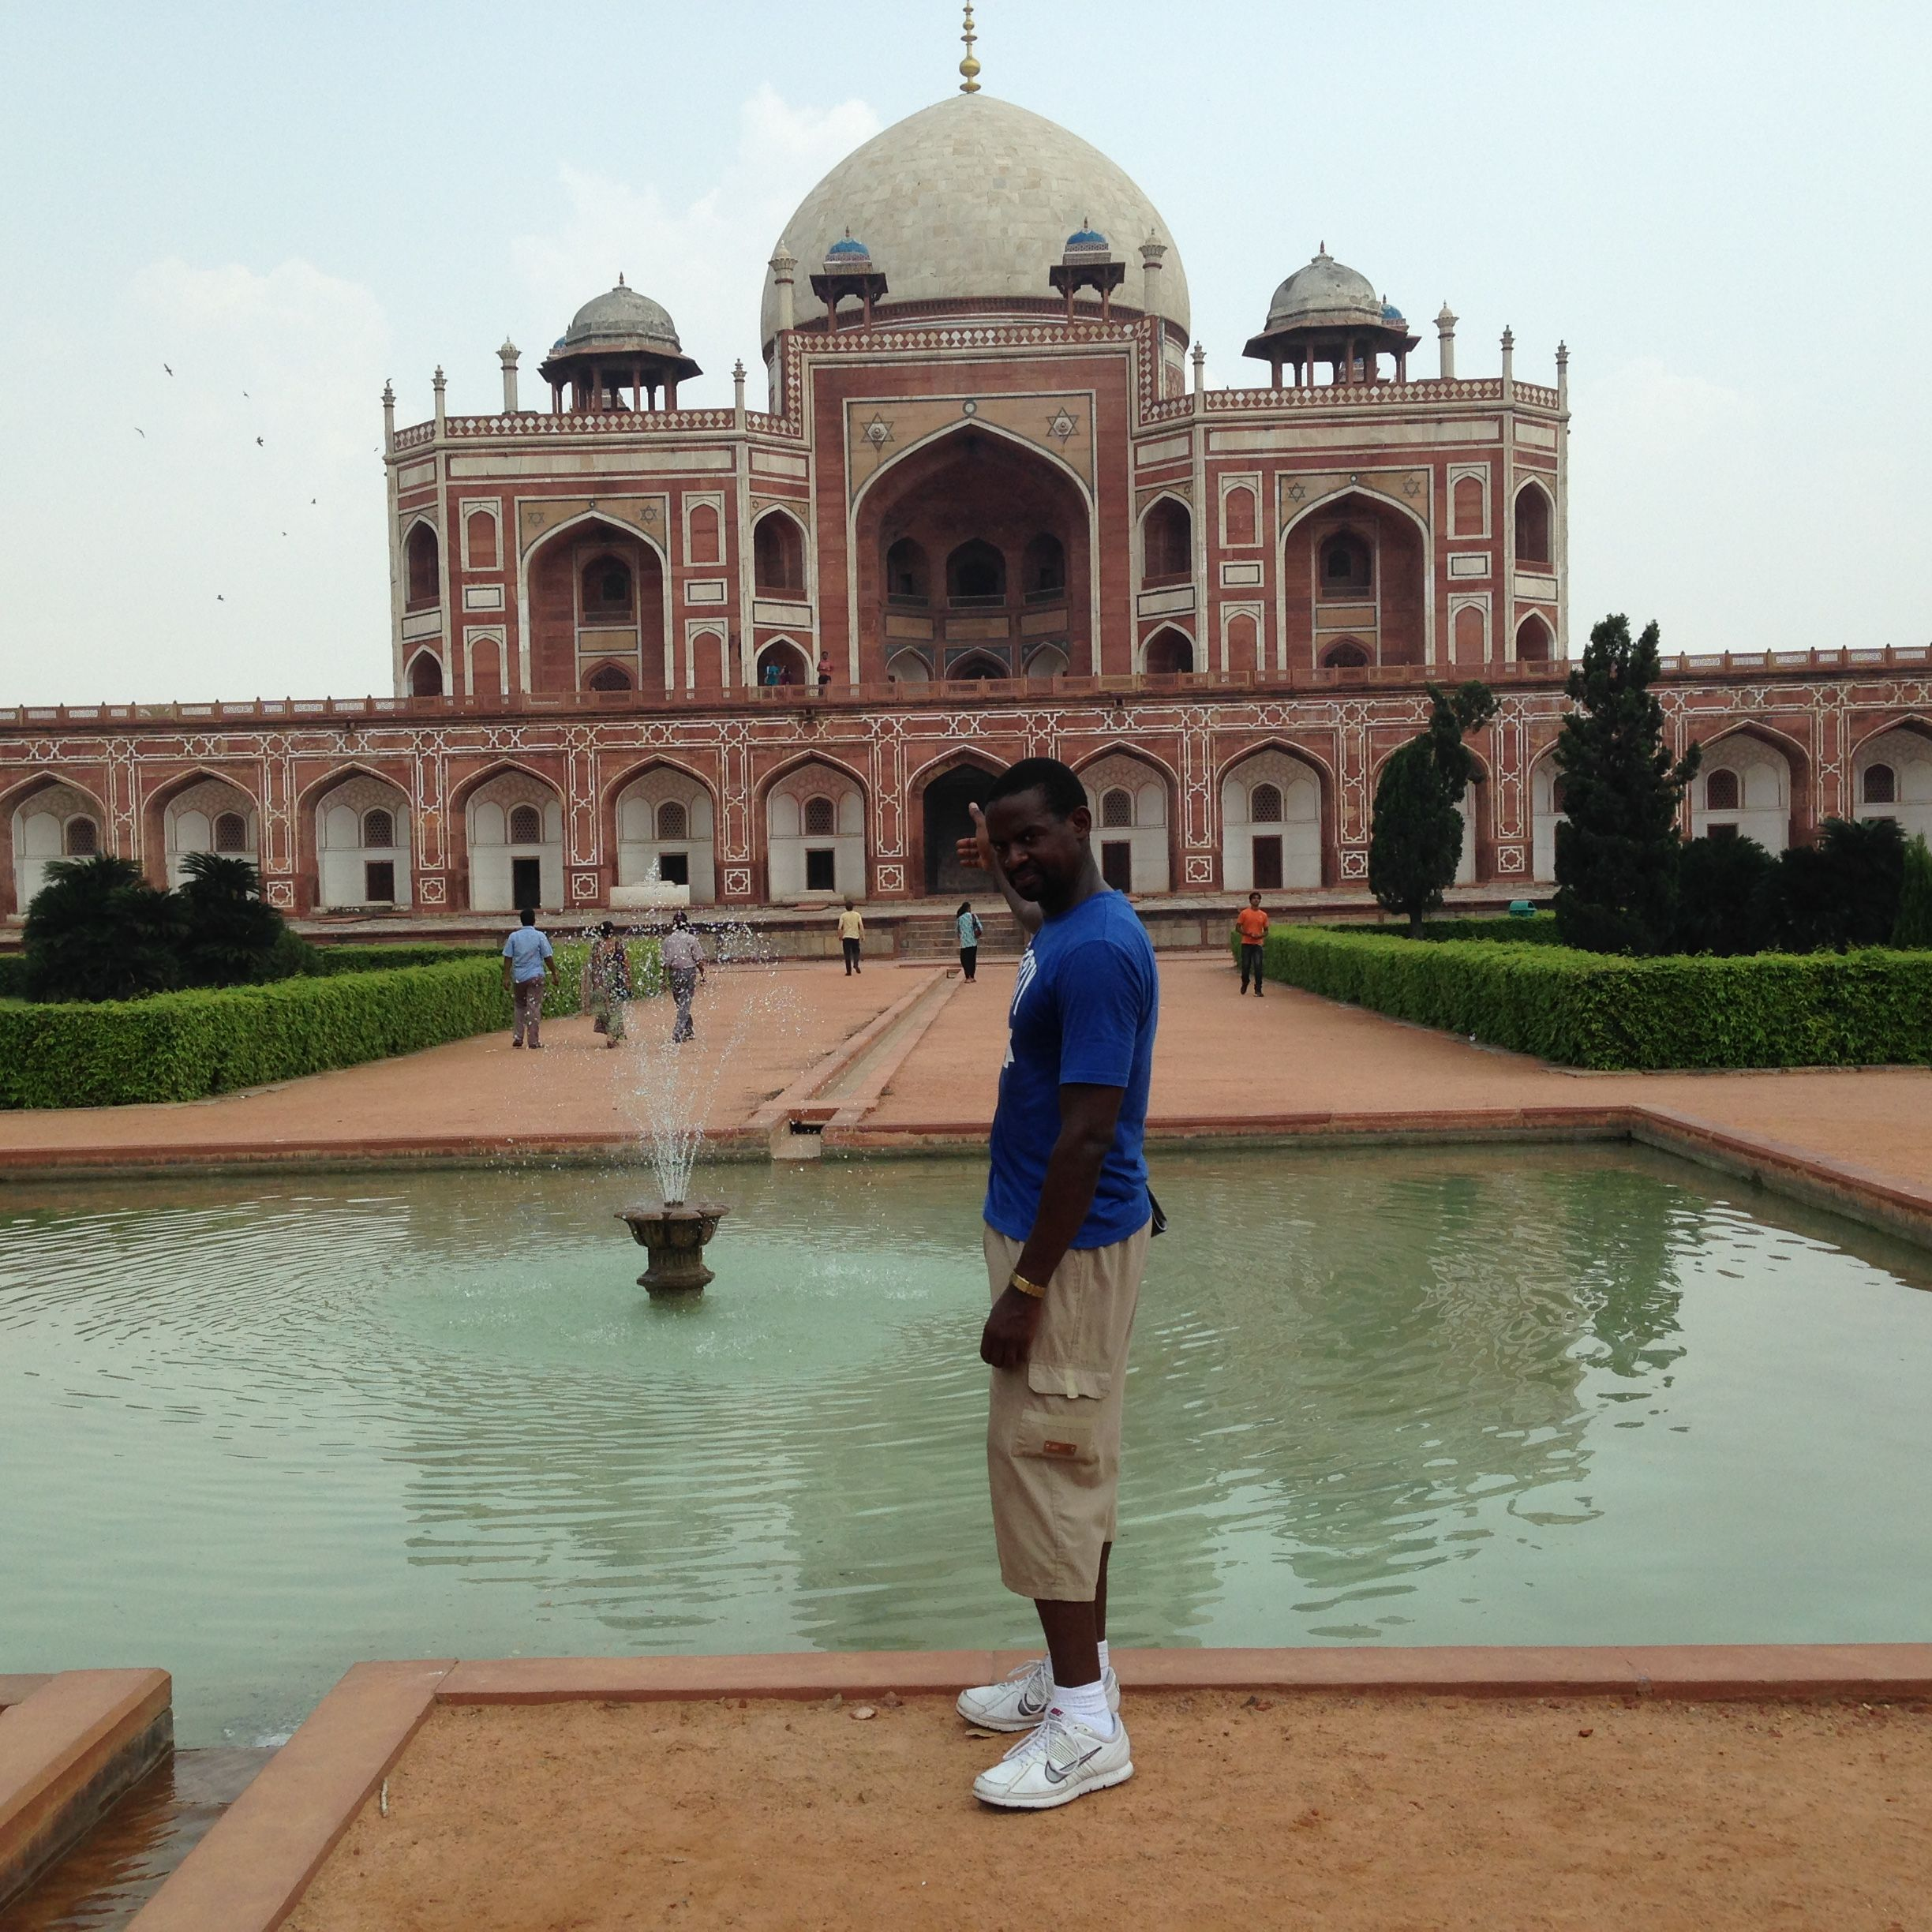 Top 6 Places to Visit in New Delhi. My Best 6 - A Visual ...